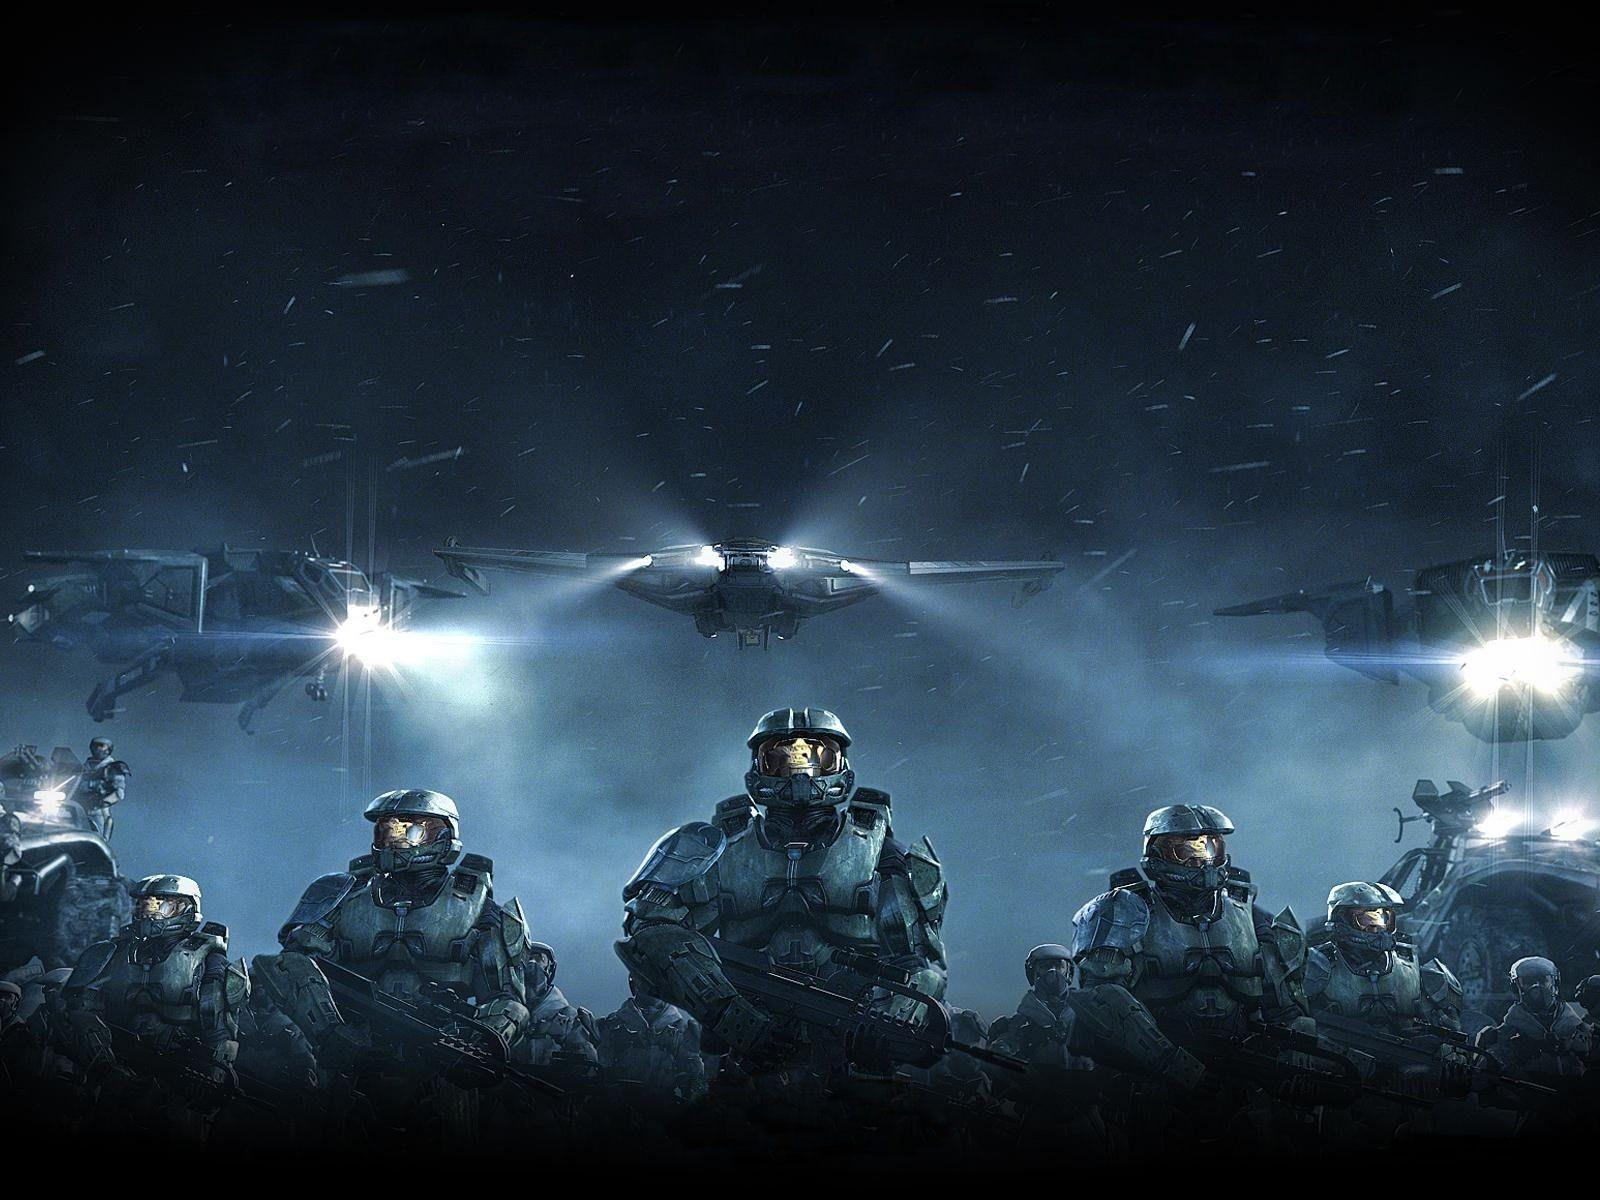 Halo Wars Wallpapers 5010 Hd Wallpapers Photo 61026 Label: 5010